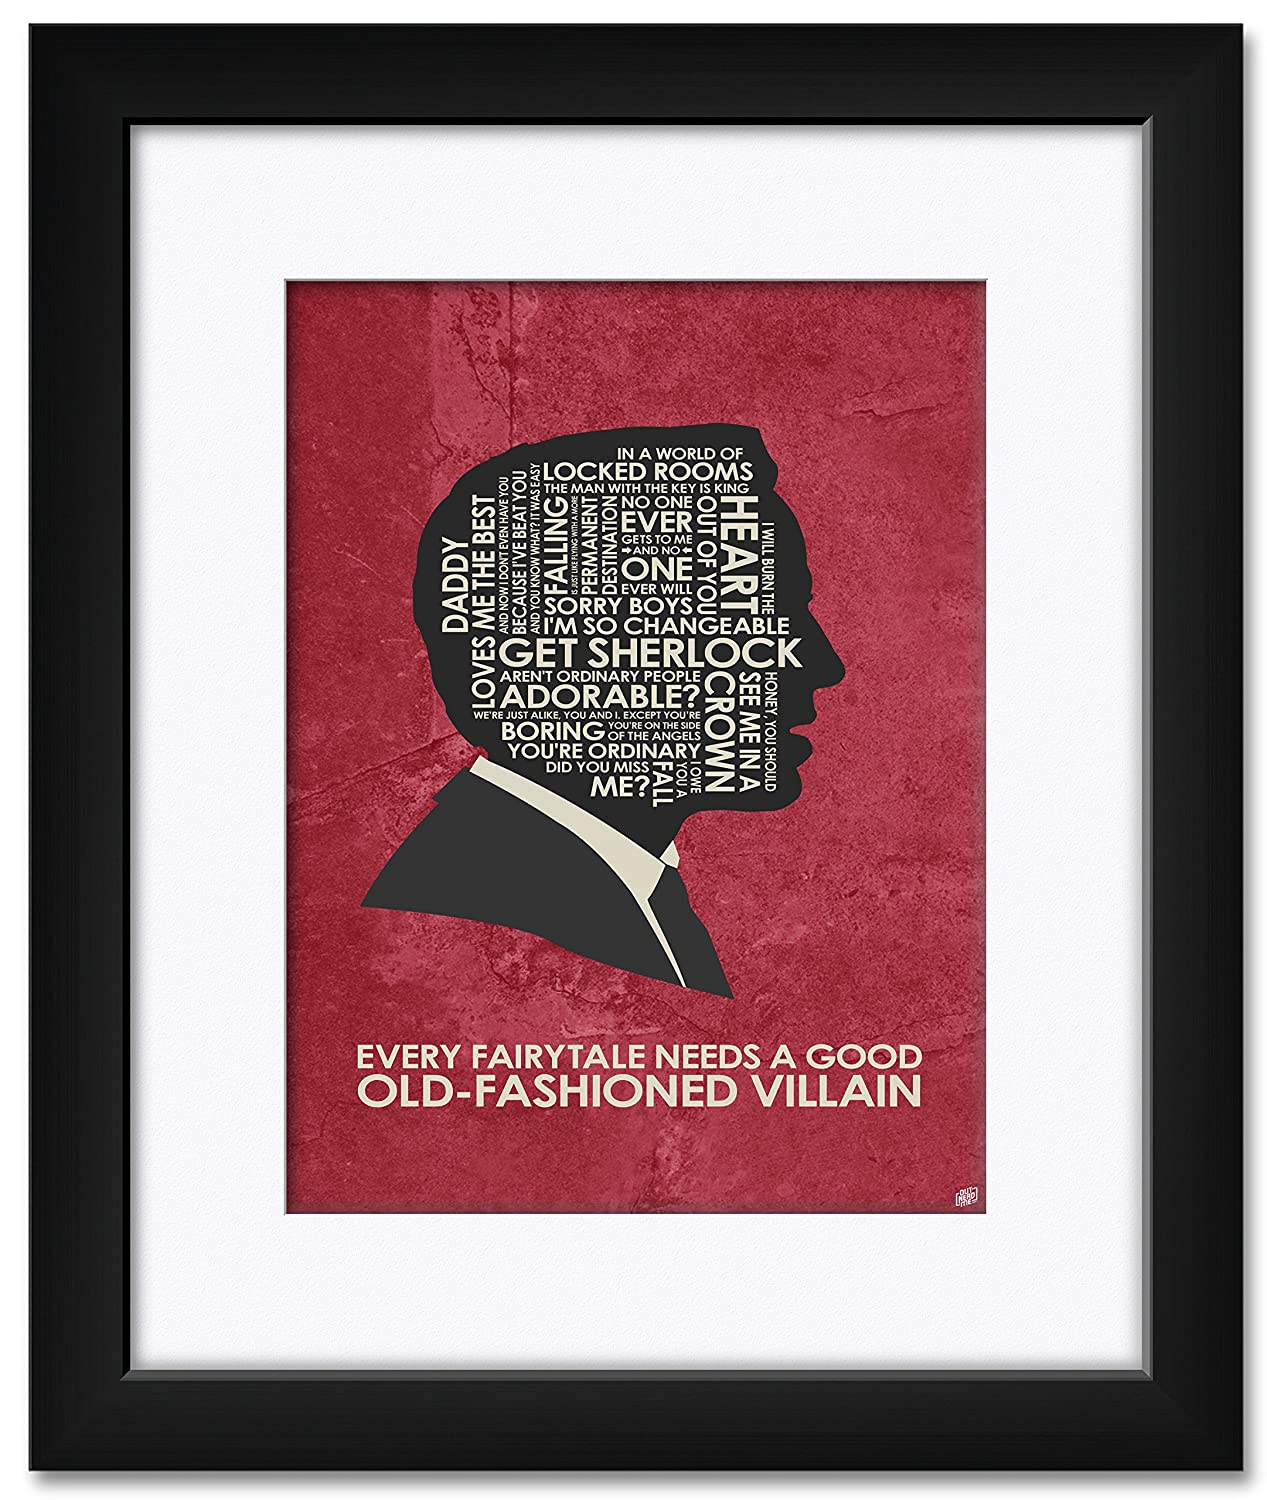 Amazon.com: Jim Moriarty, Every Fairytale Needs A Good Old-Fashioned Villain Framed & Matted Art Print by Stephen Poon. Print Size: 9